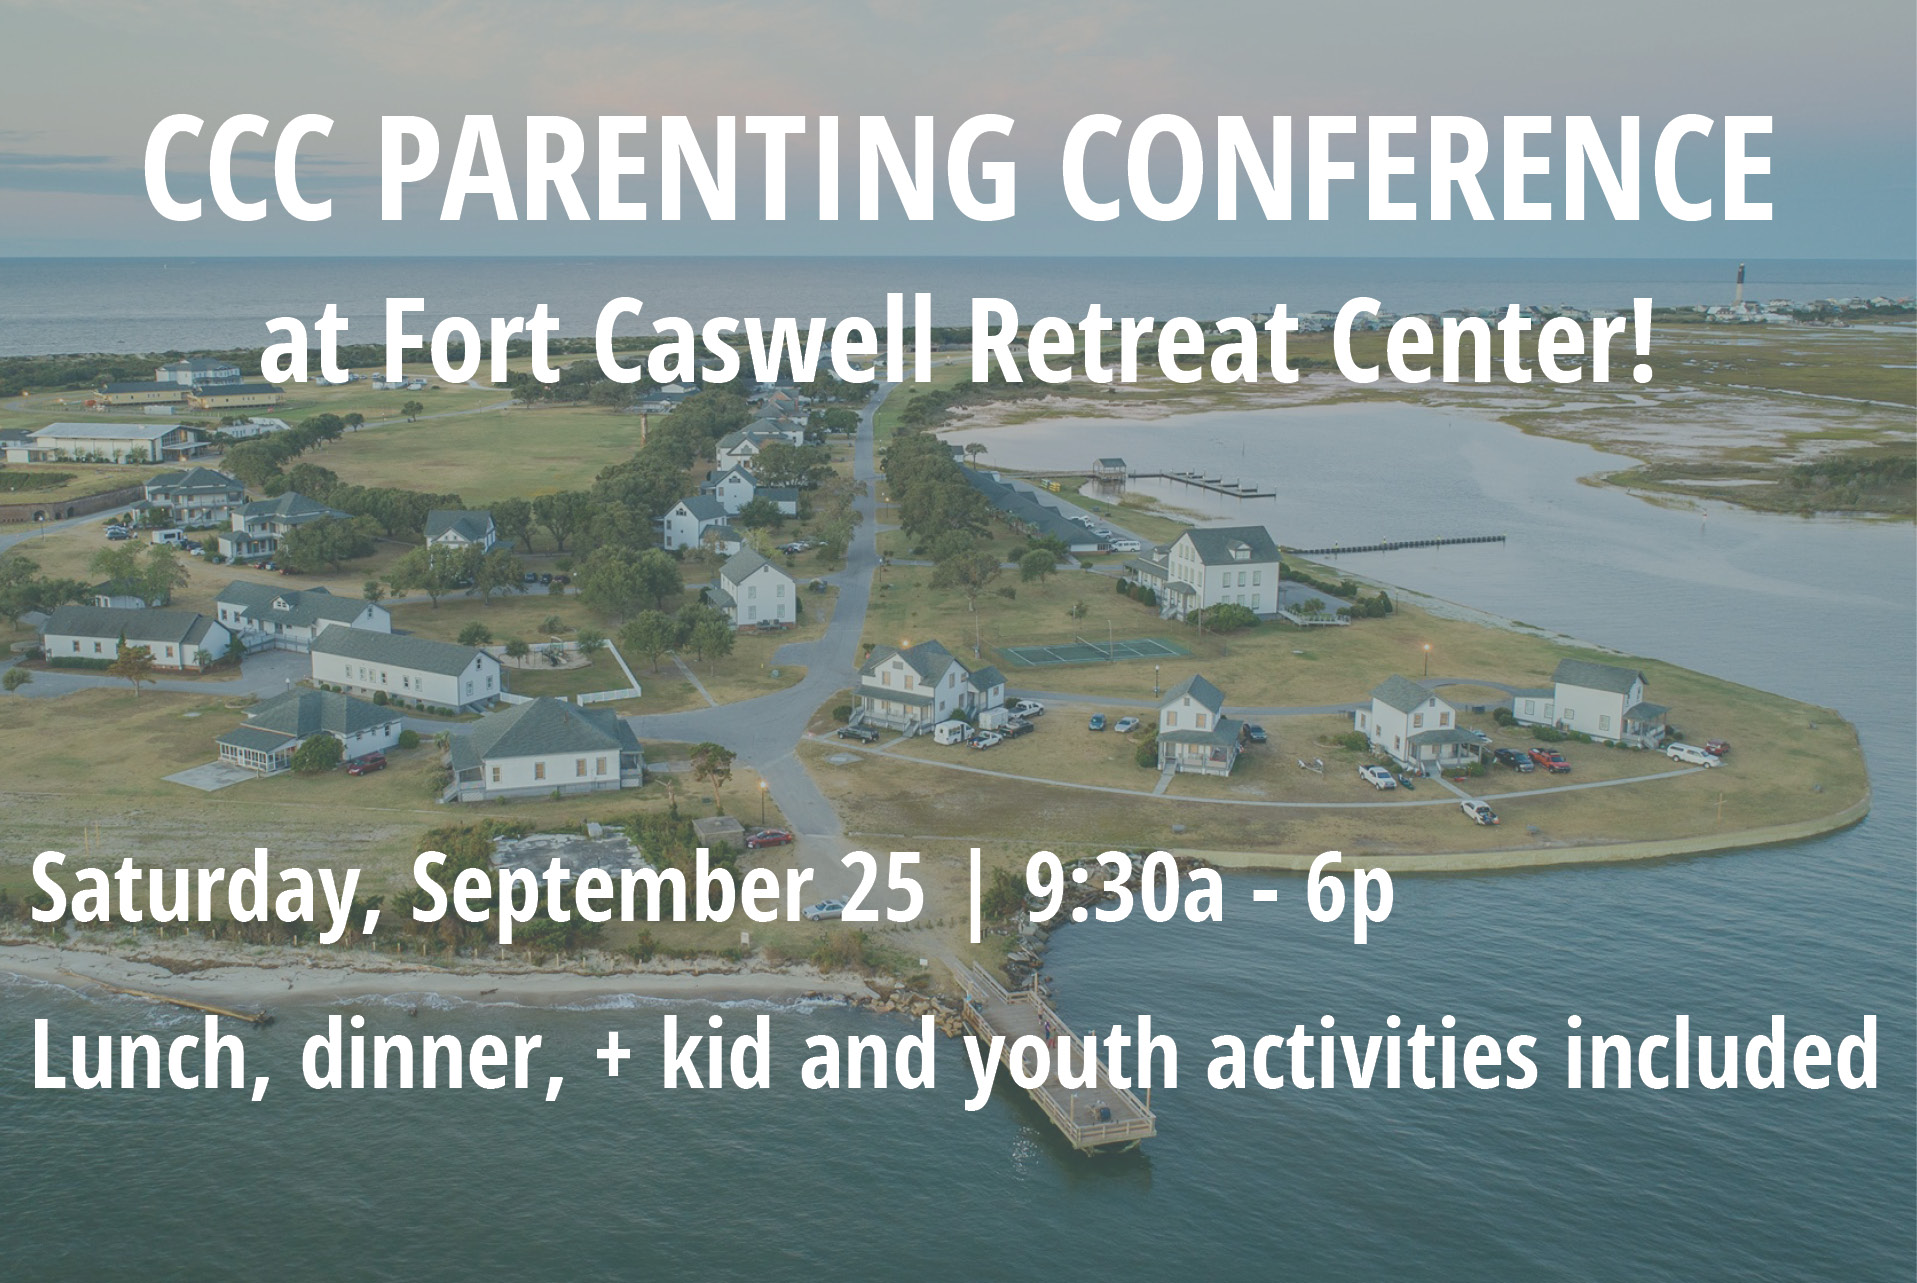 CCC parenting conference image rect